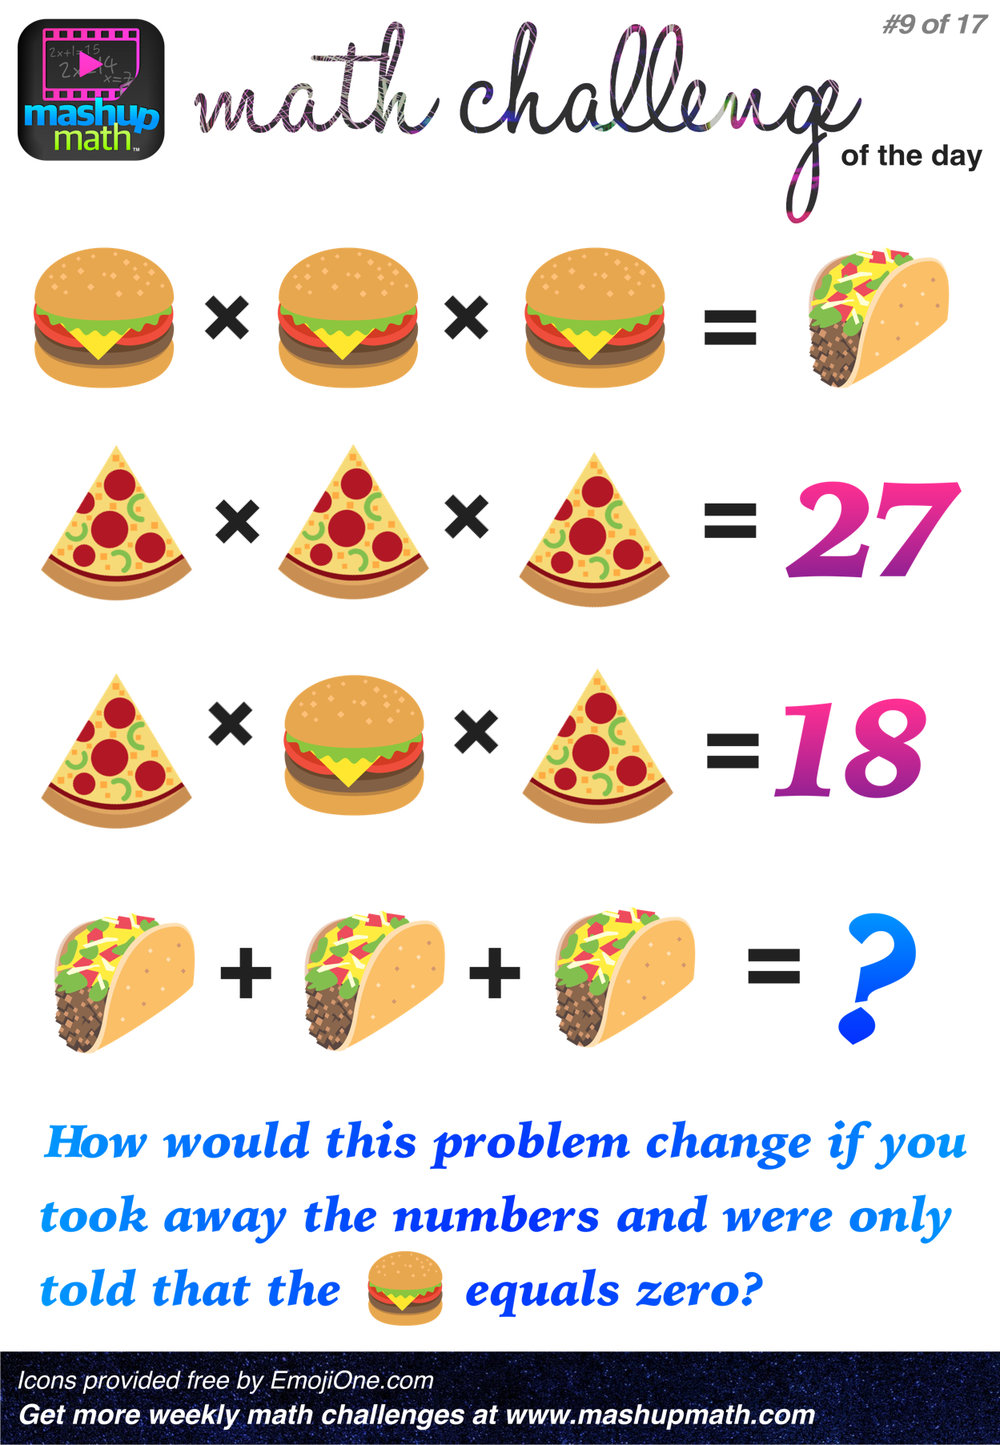 Are You Ready For  Awesome New Math Challenges  Mashup Math One Of The Pair Alligator And Snail Is  And The Other Is  But It Is  Not Possible To Tell Which Is Which